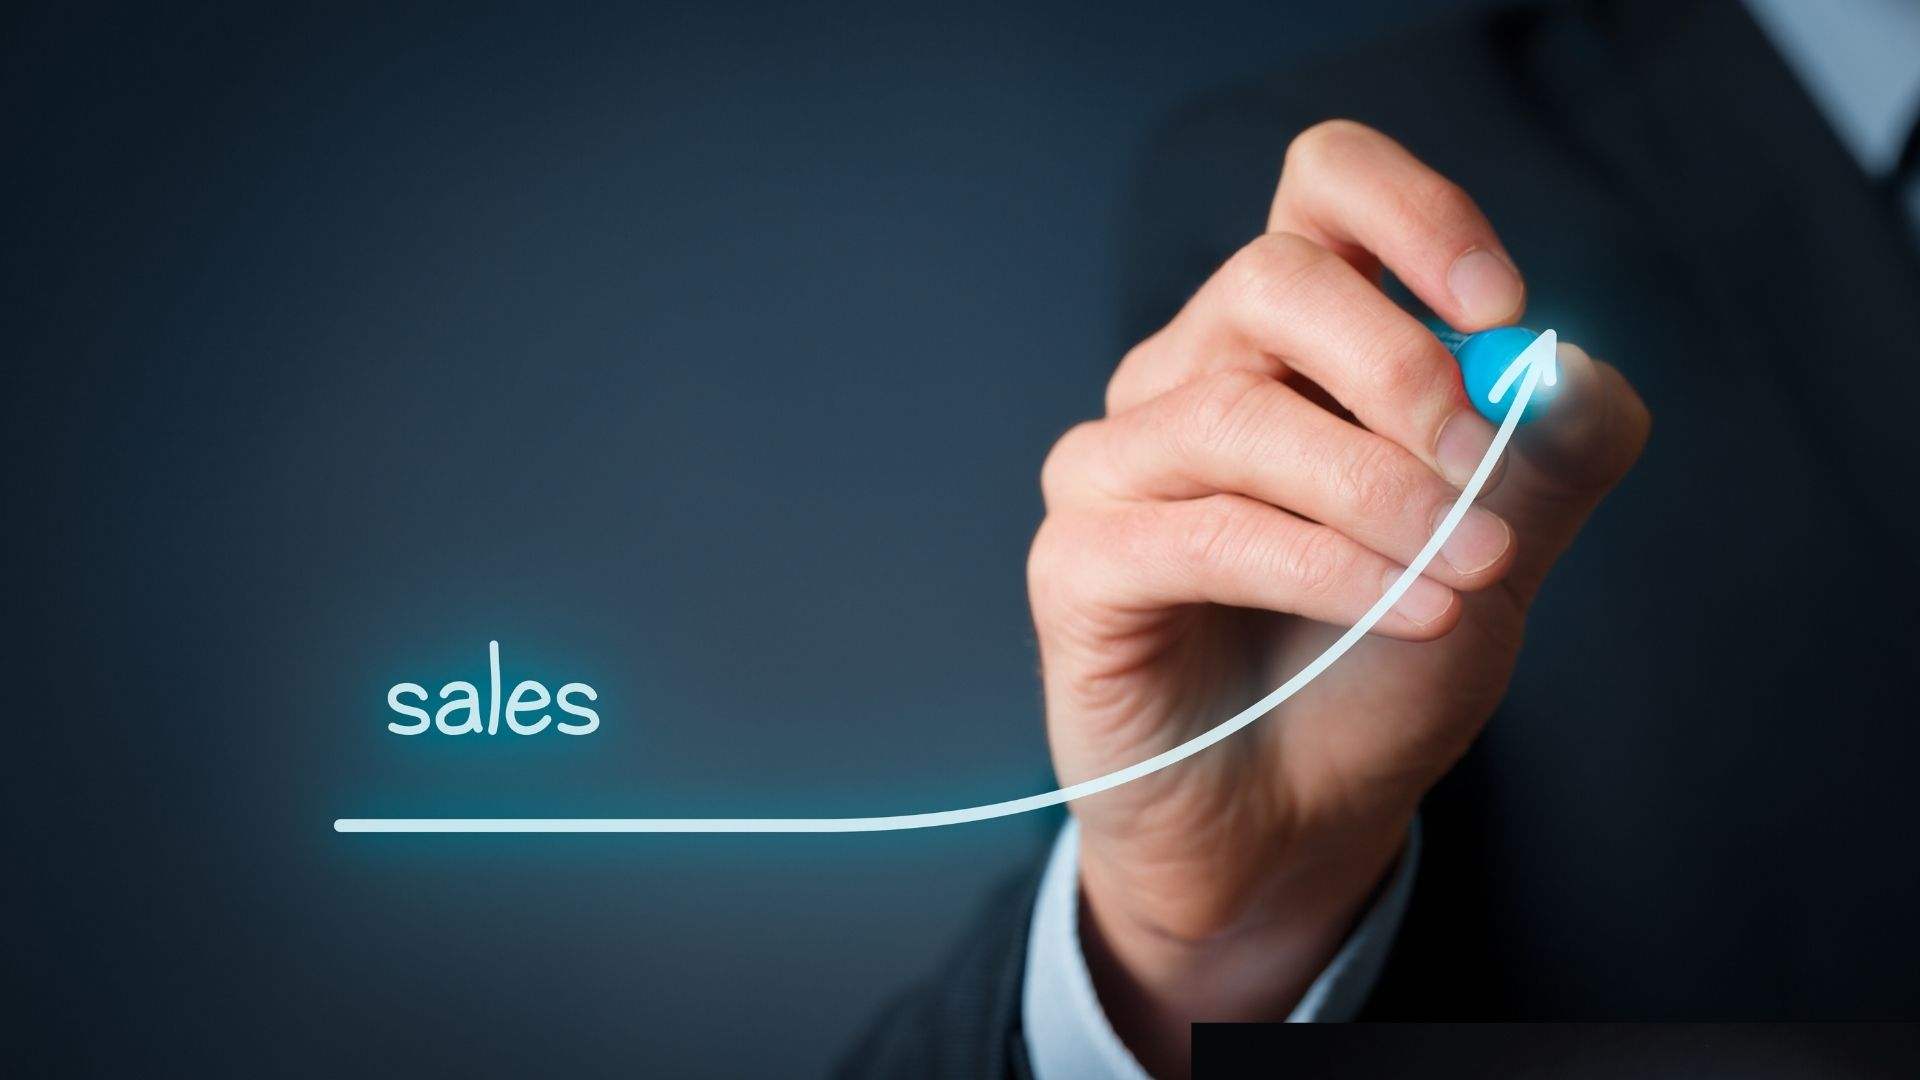 How to improve sales during a global pandemic 35